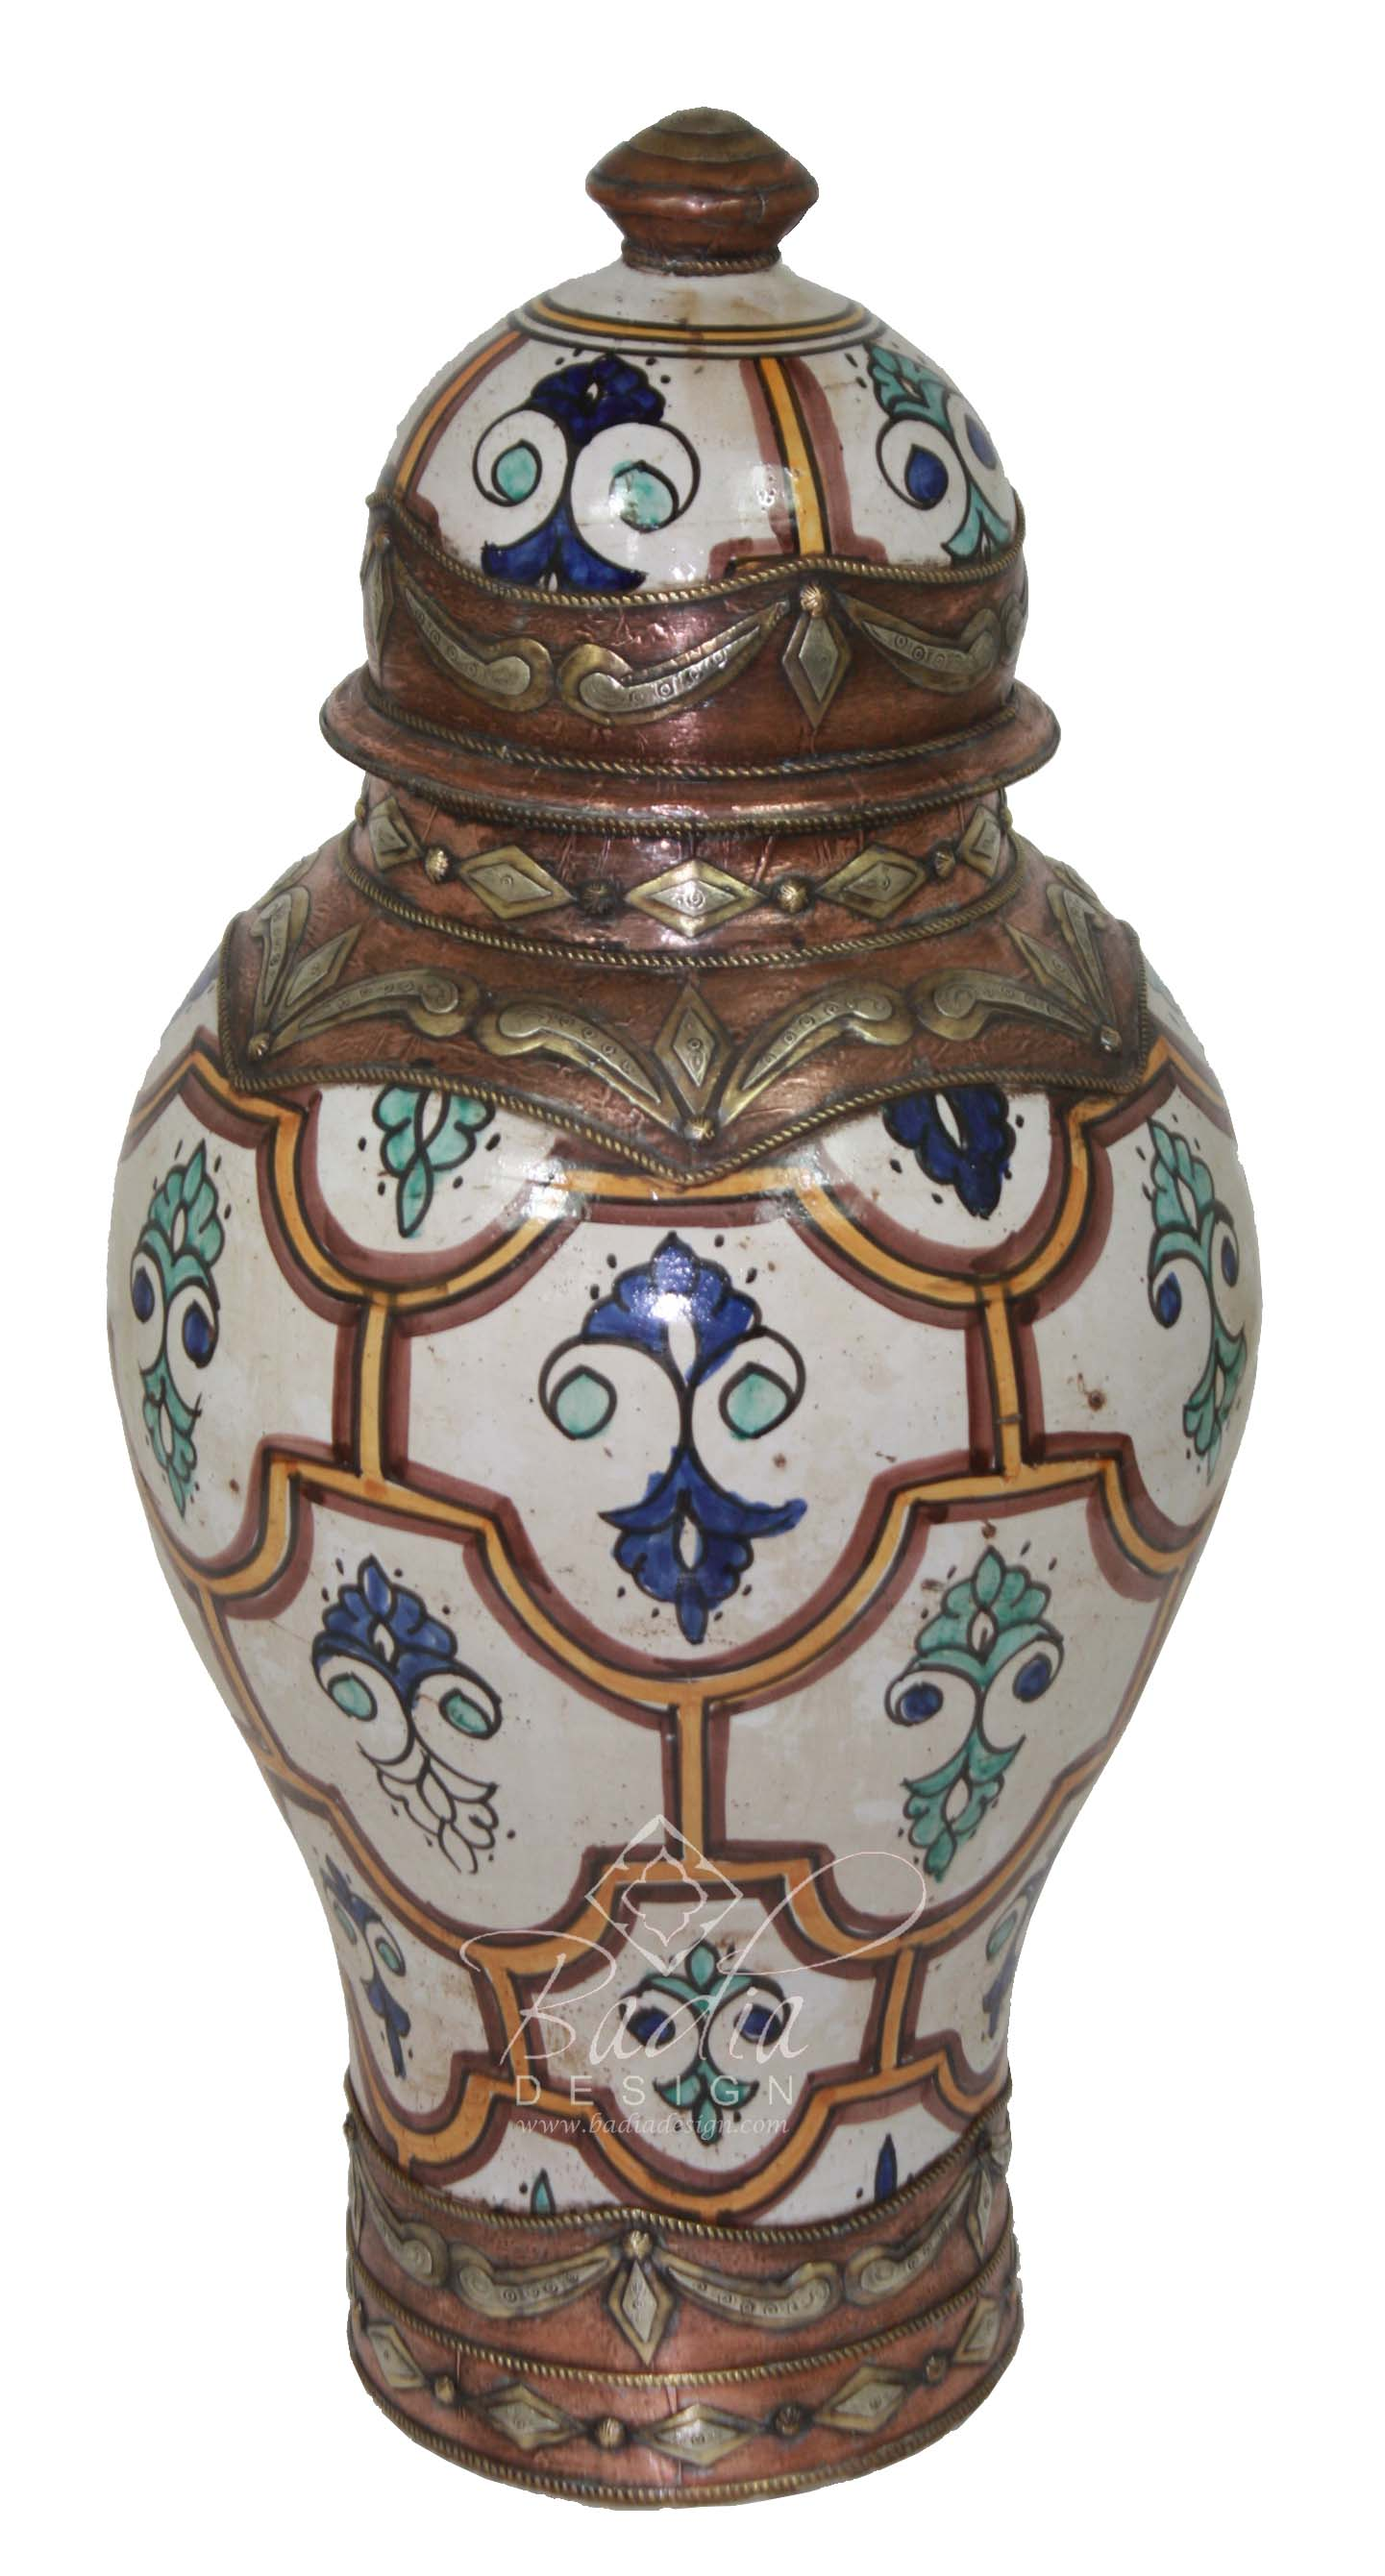 moroccan-hand-painted-metal-and-ceramic-urn-va087.jpg